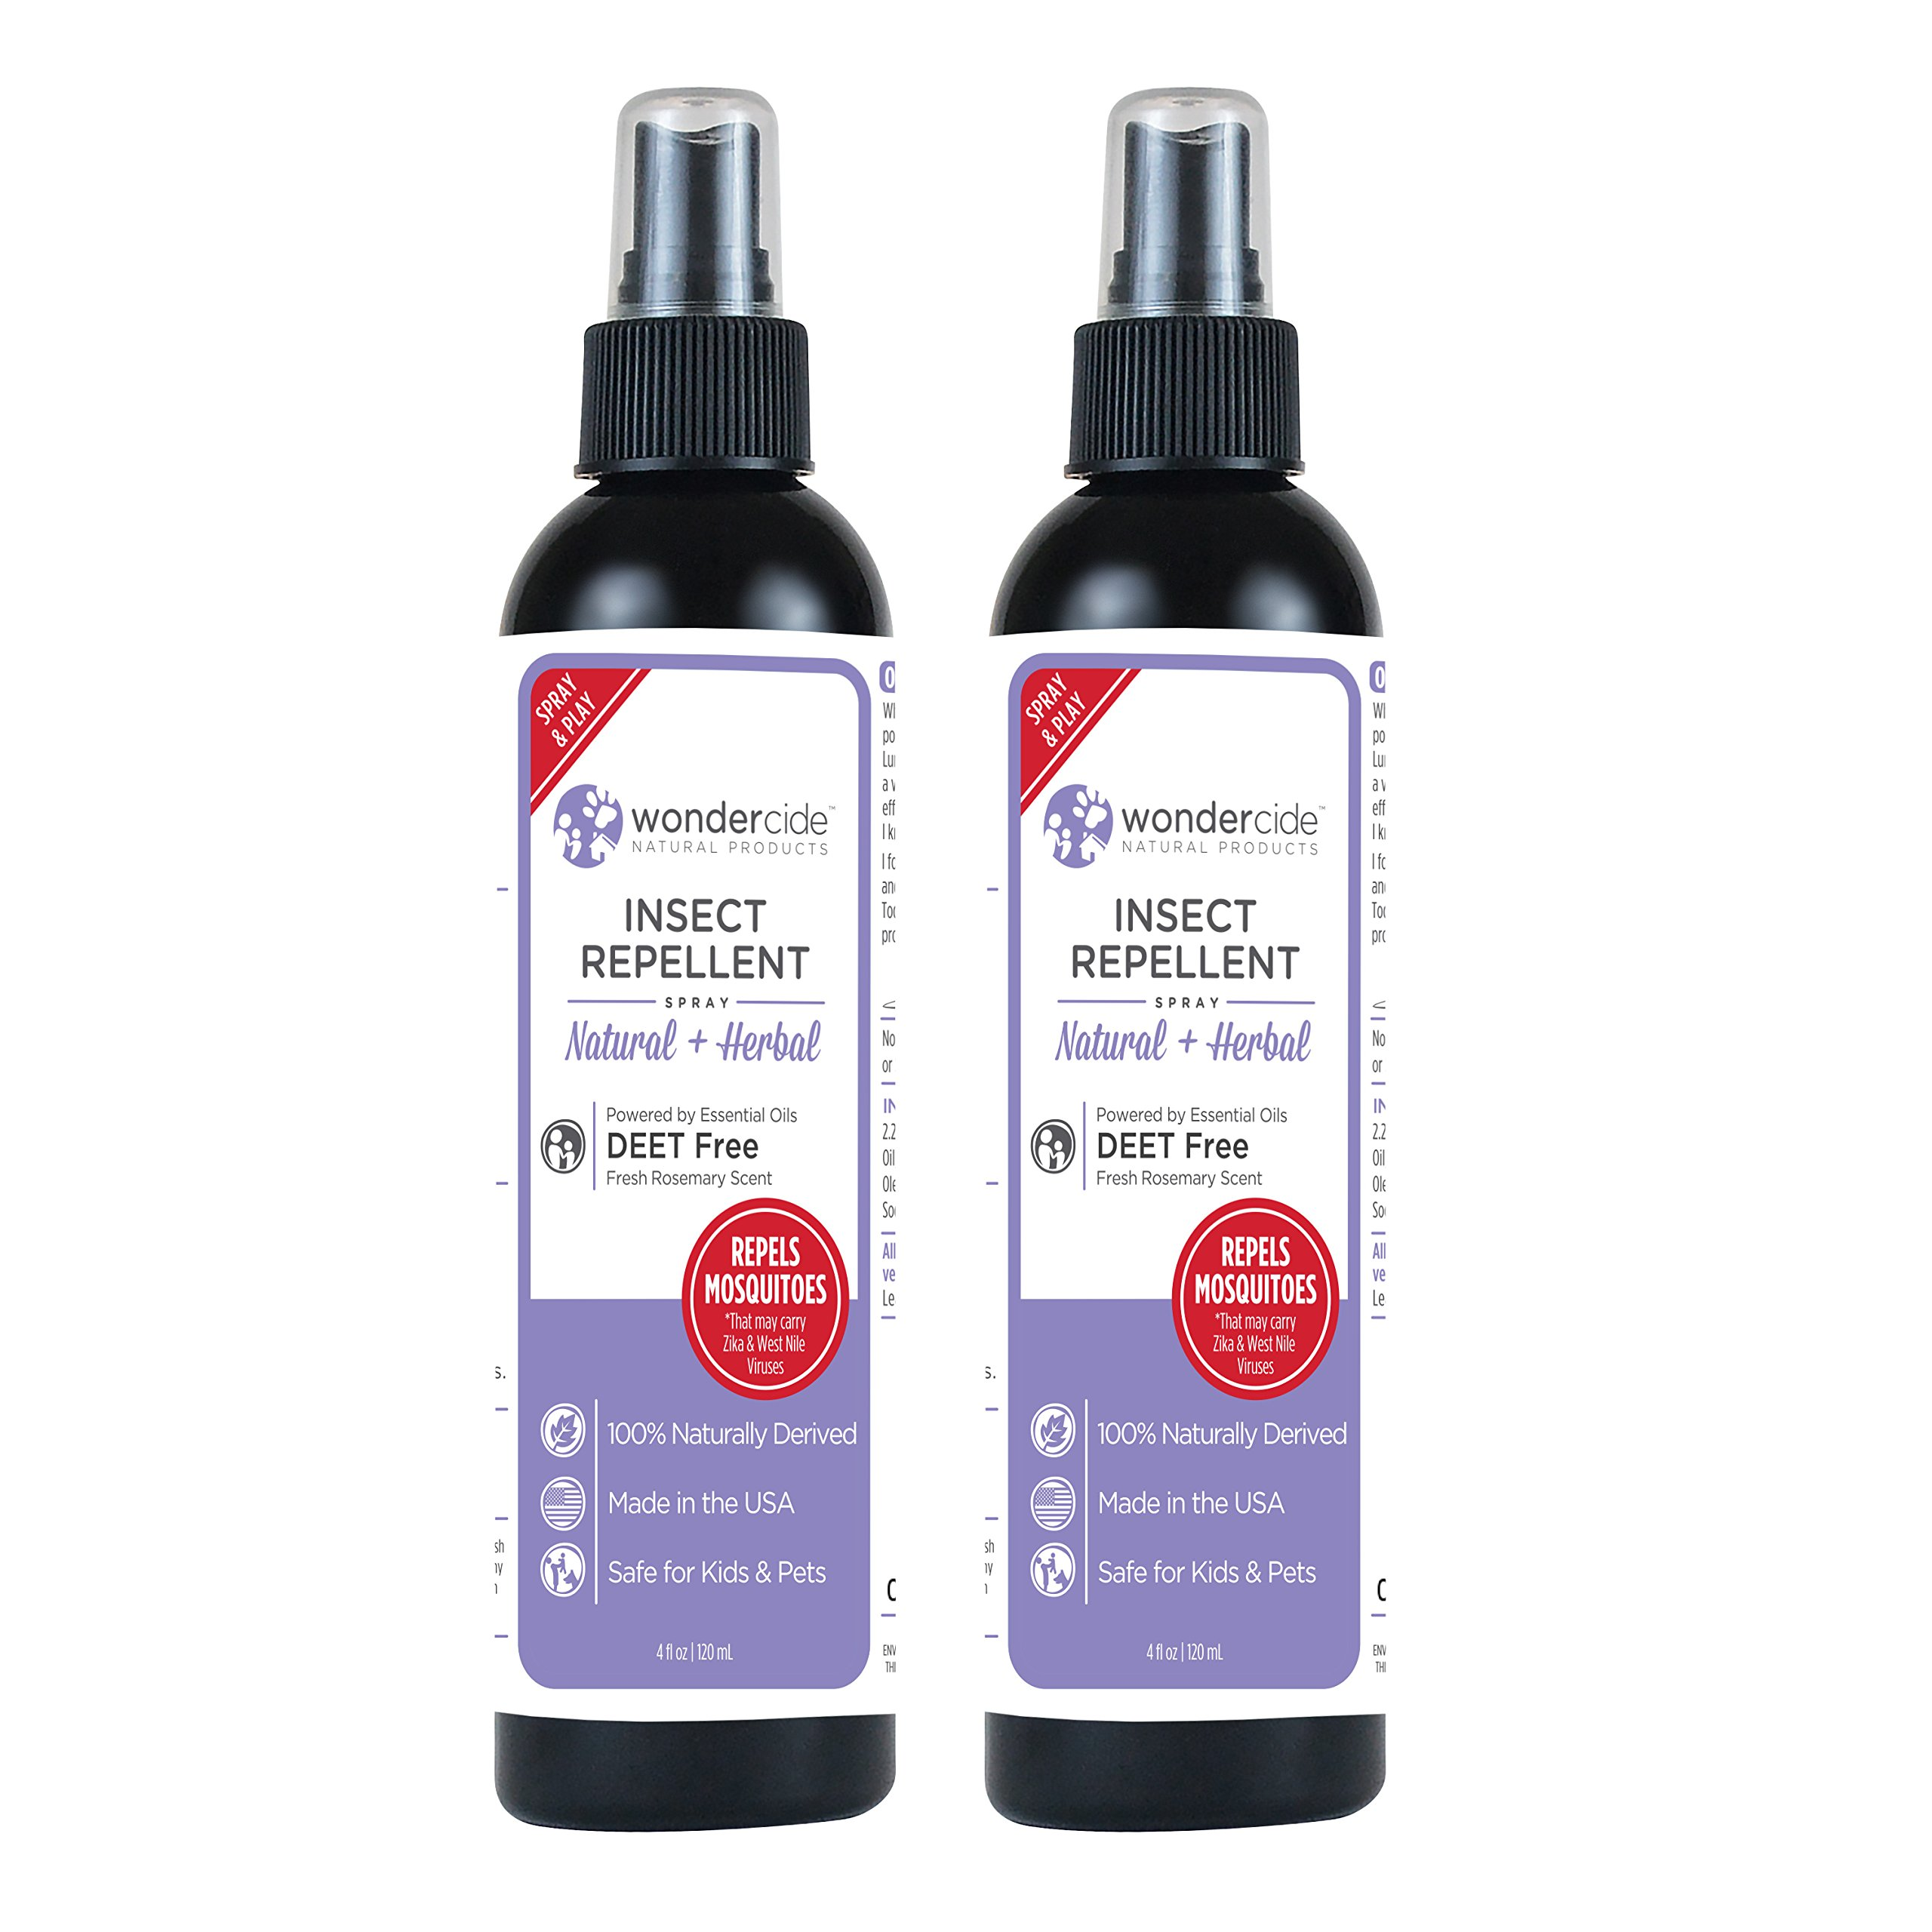 Wondercide Natural Deet Free Insect Repellent 4 oz Pack of 2 (Rosemary)